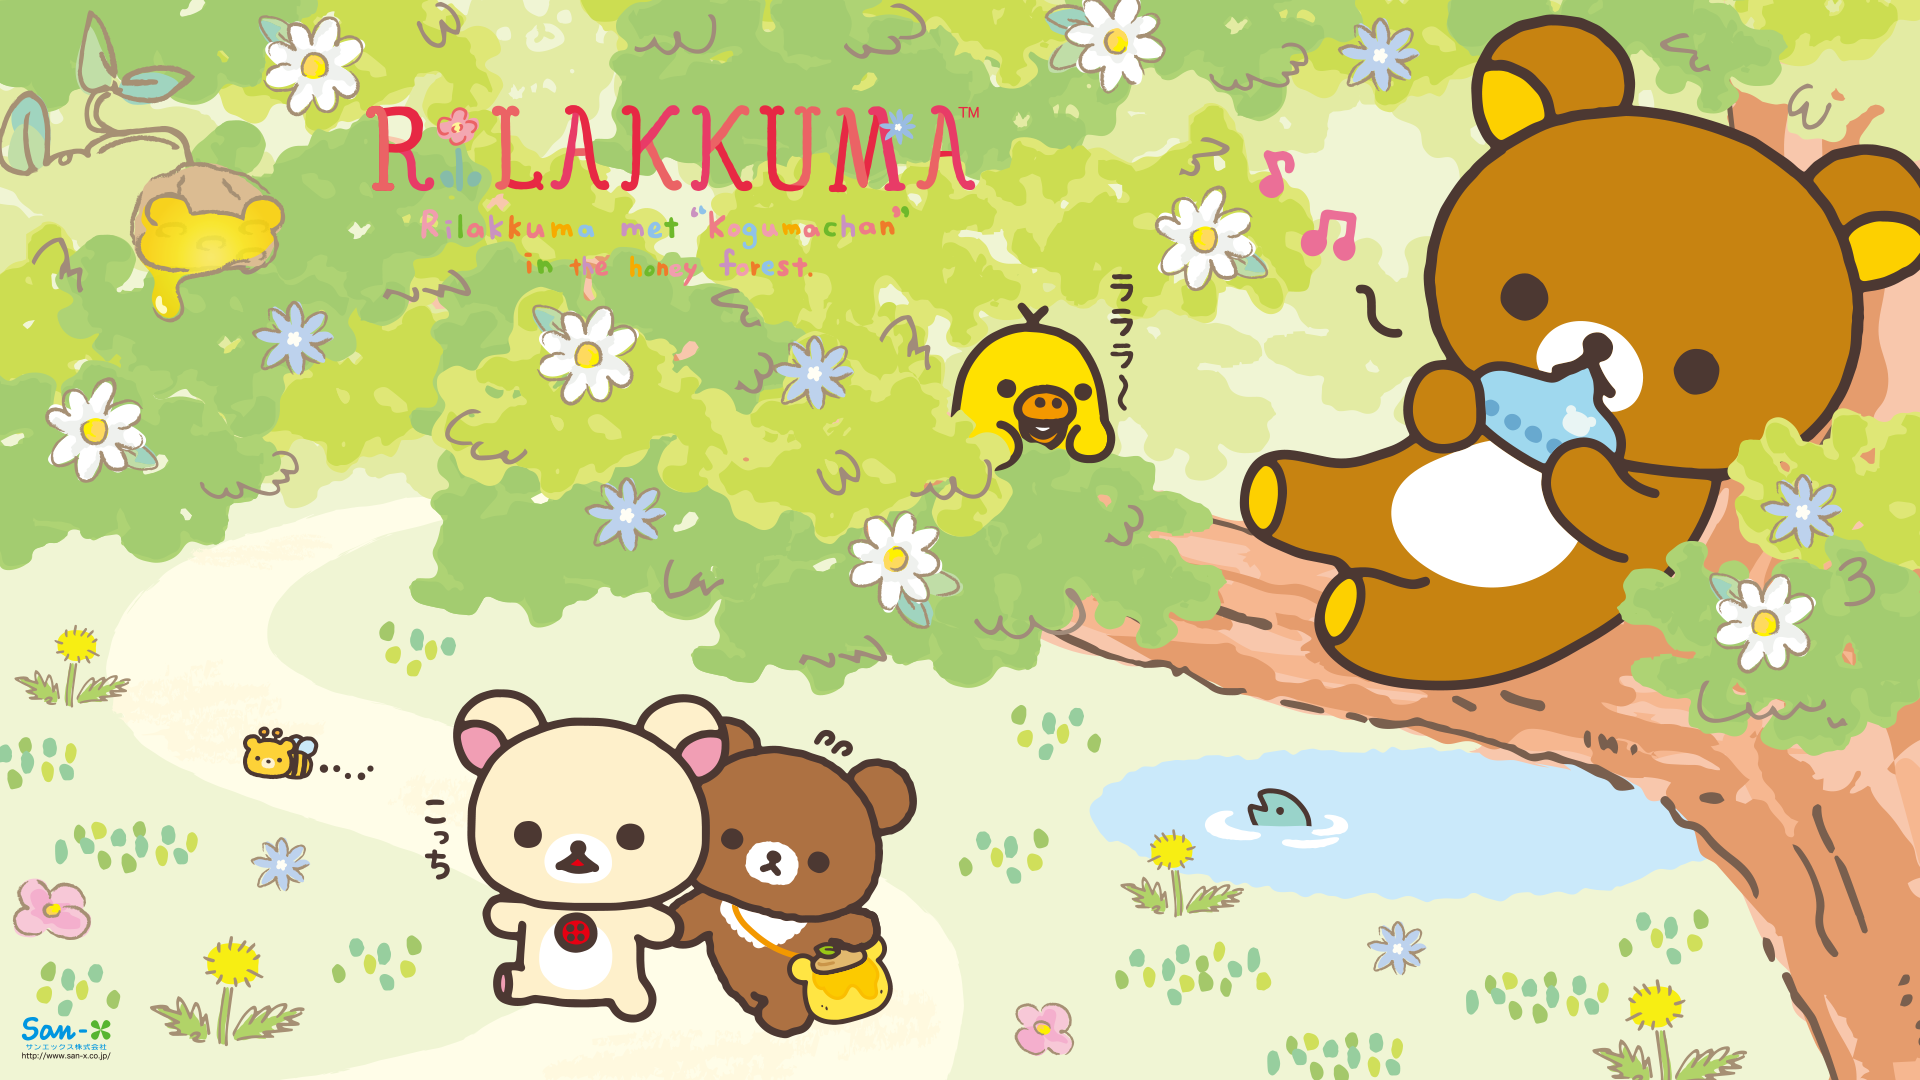 Wallpaper iphone san x - Pc01_1080_1920 Png 1920 1080 Kawaii Character Pinterest Rilakkuma Sanrio And Patterns